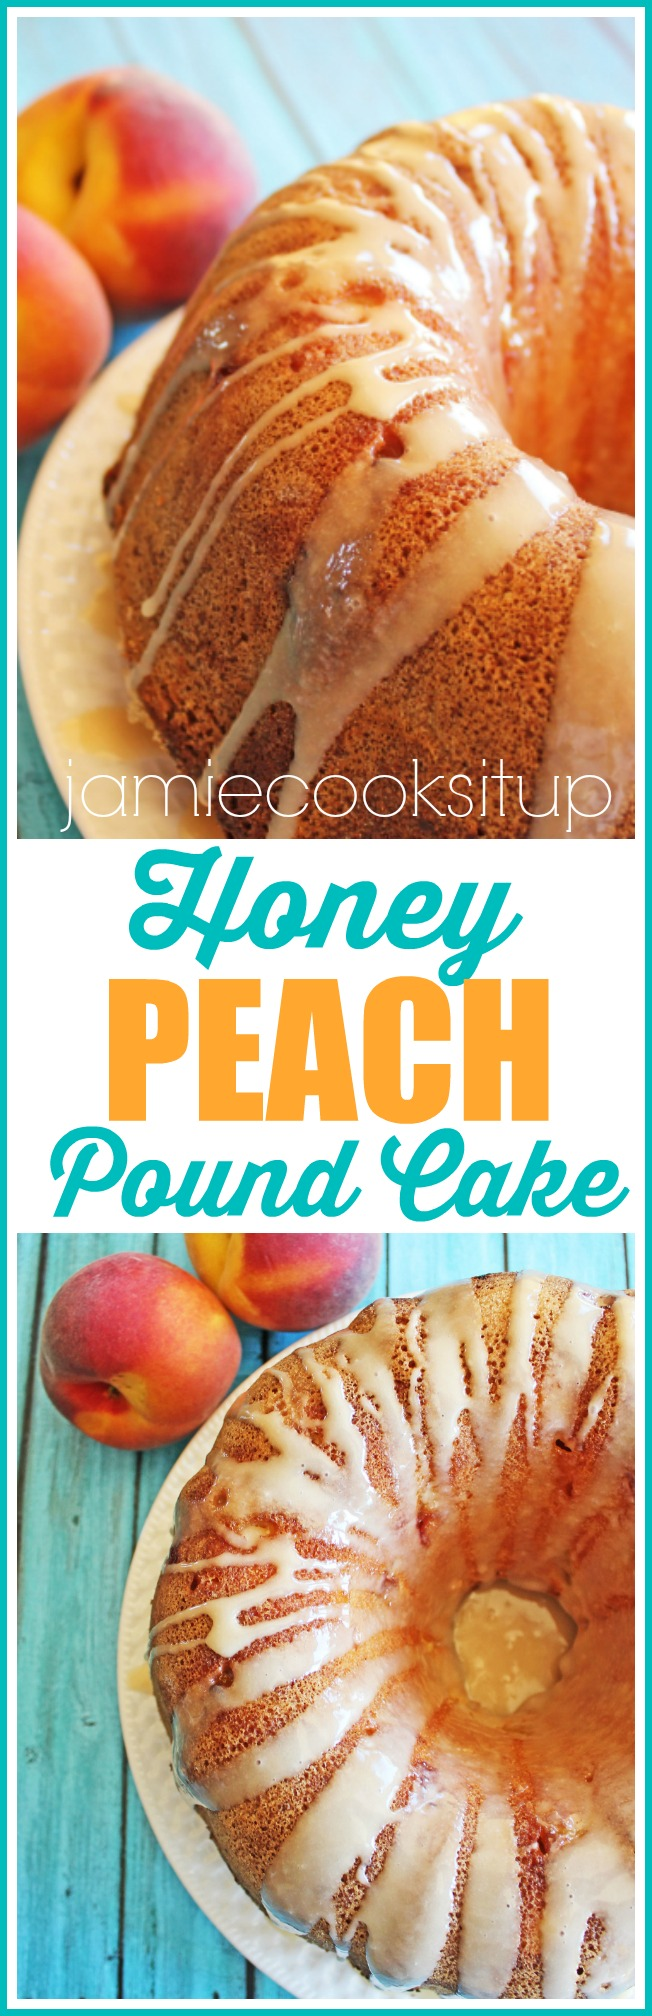 Honey Peach Pound Cake at Jamie Cooks It Up!